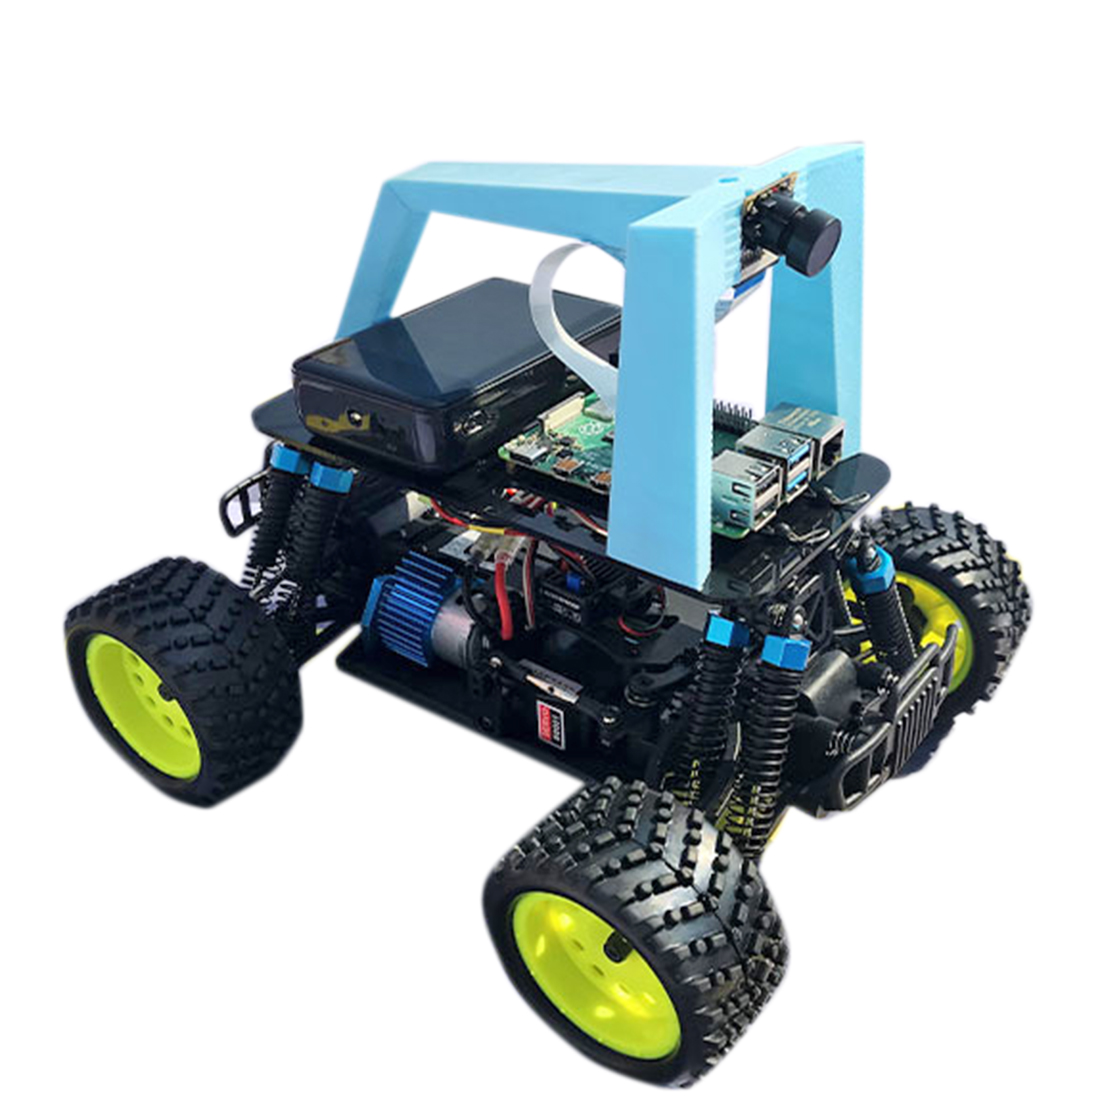 Hot Artificial Intelligence Car Programmable Autopilot Donkey Robot Car Kit With Racing Track For Jetson Nano Development Board